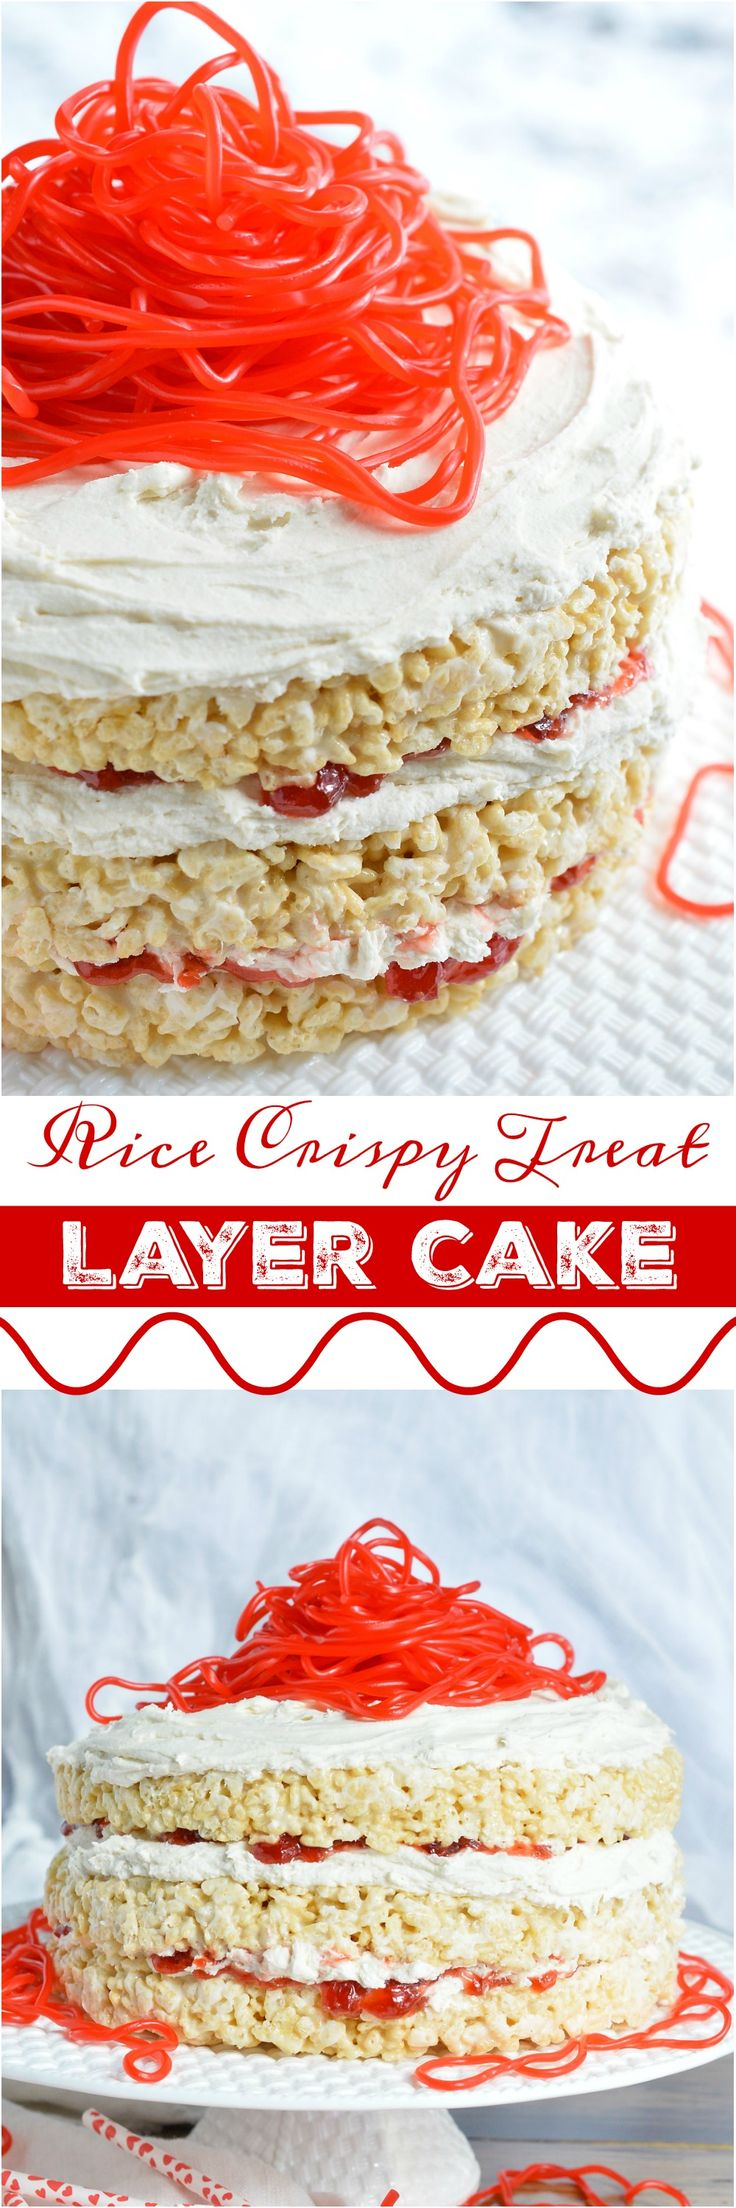 This Rice Crispy Treat Candy Cake is a fun and whimsical dessert recipe. Perfect for Valentine's Day, kids birthdays or for anyone that doesn't like traditional cake. Three layers of rice crispy treats smeared with vanilla butter cream, strawberry jam then topped with strawberry licorice ropes! (ad)